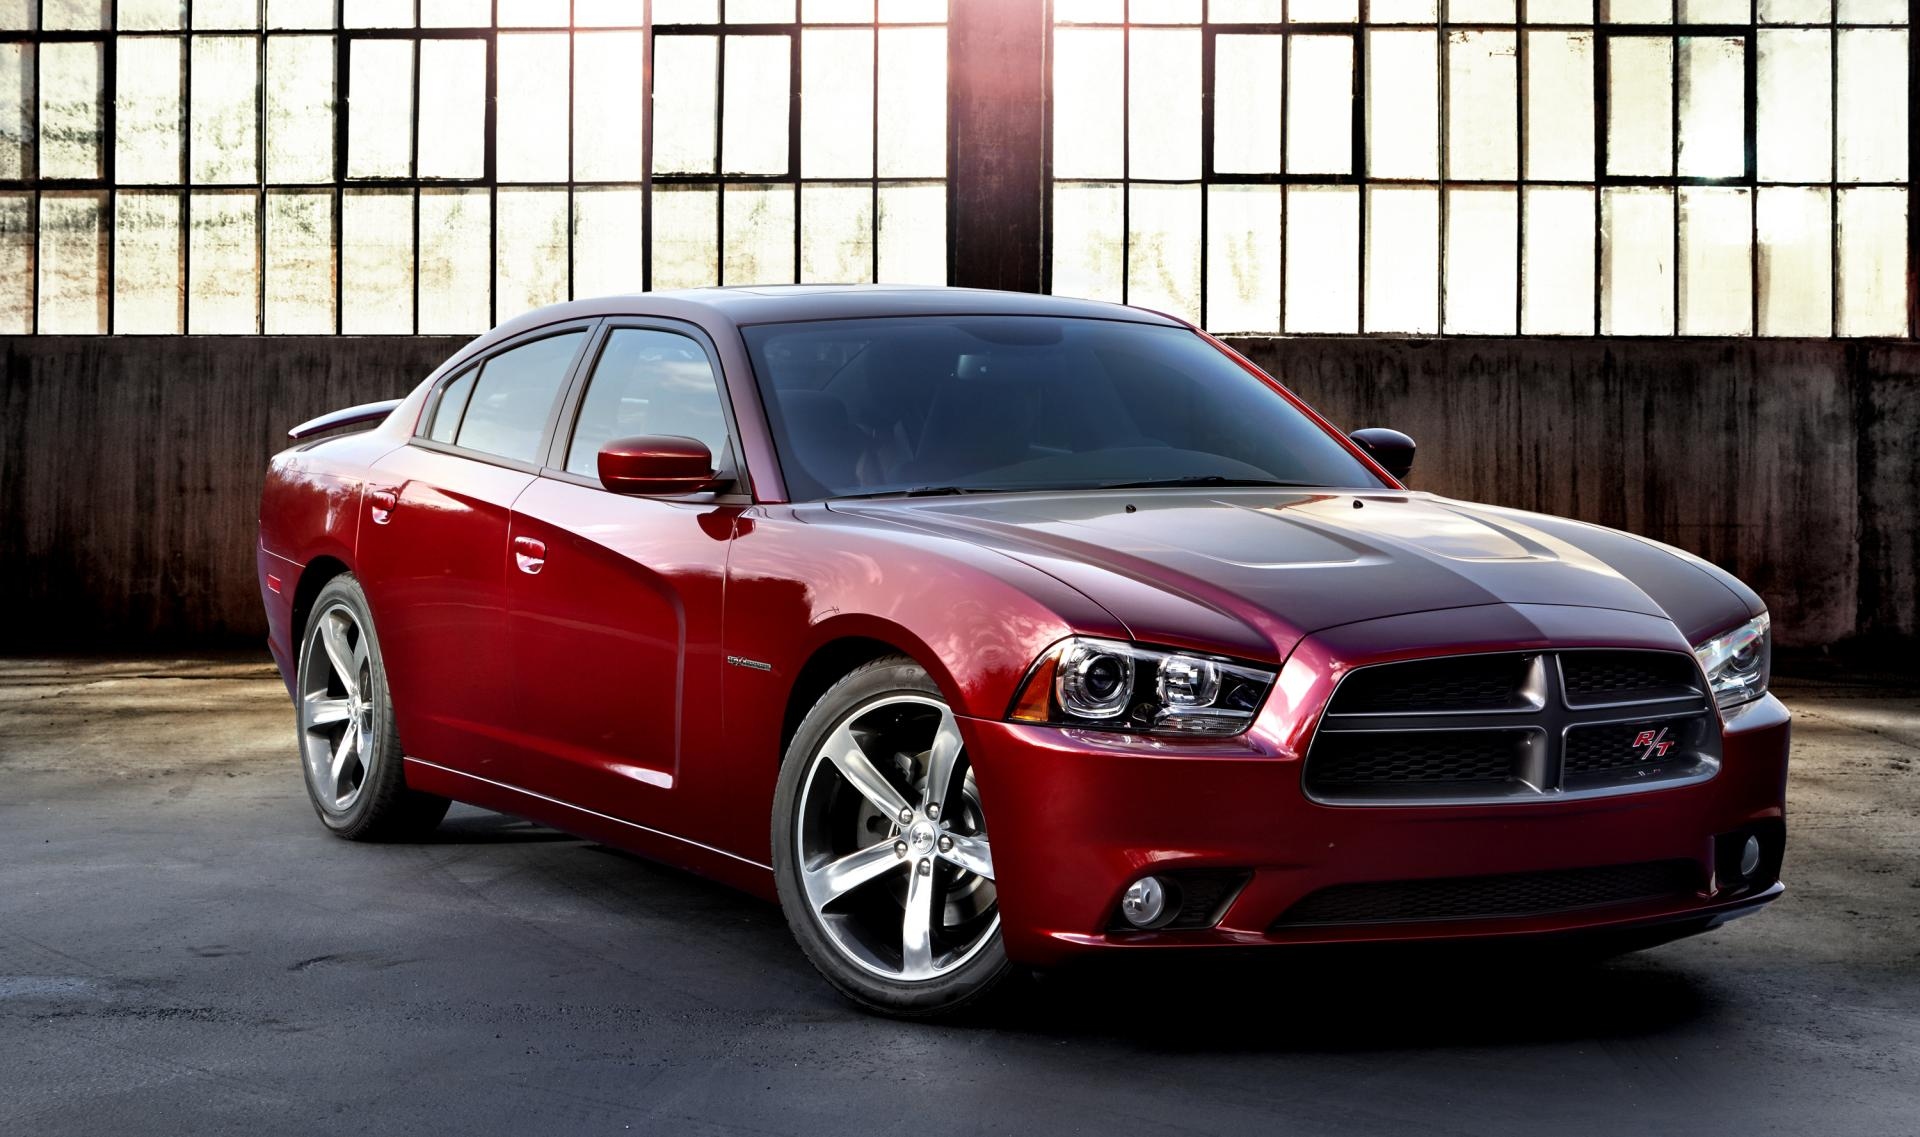 Dodge Charger Th Annv on 2011 Dodge Alternator Wiring Diagram